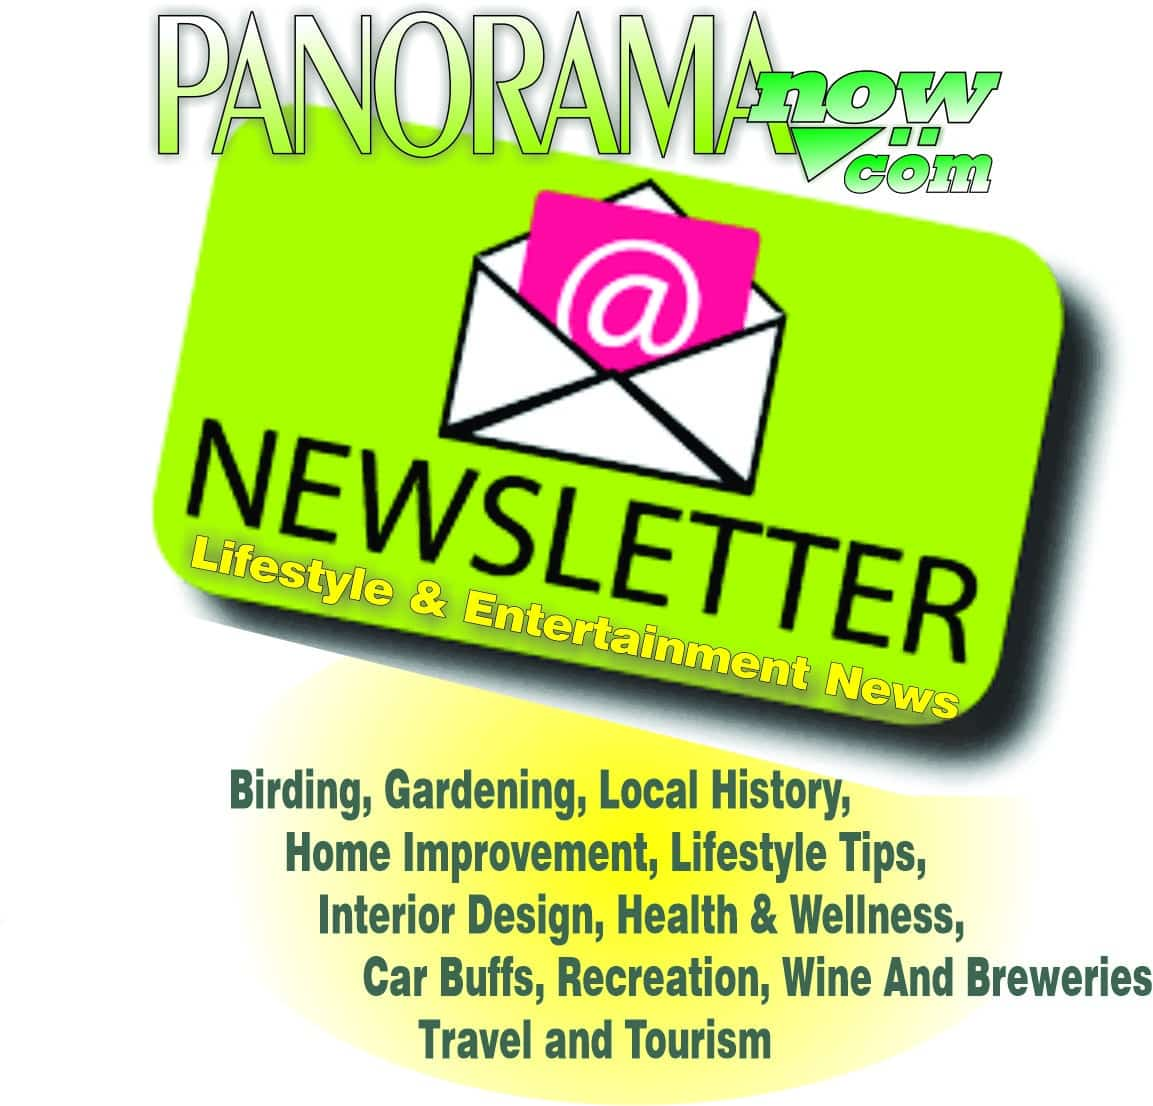 newsletter home improvement automobiles gardening health lifestyle tips interior family parenting